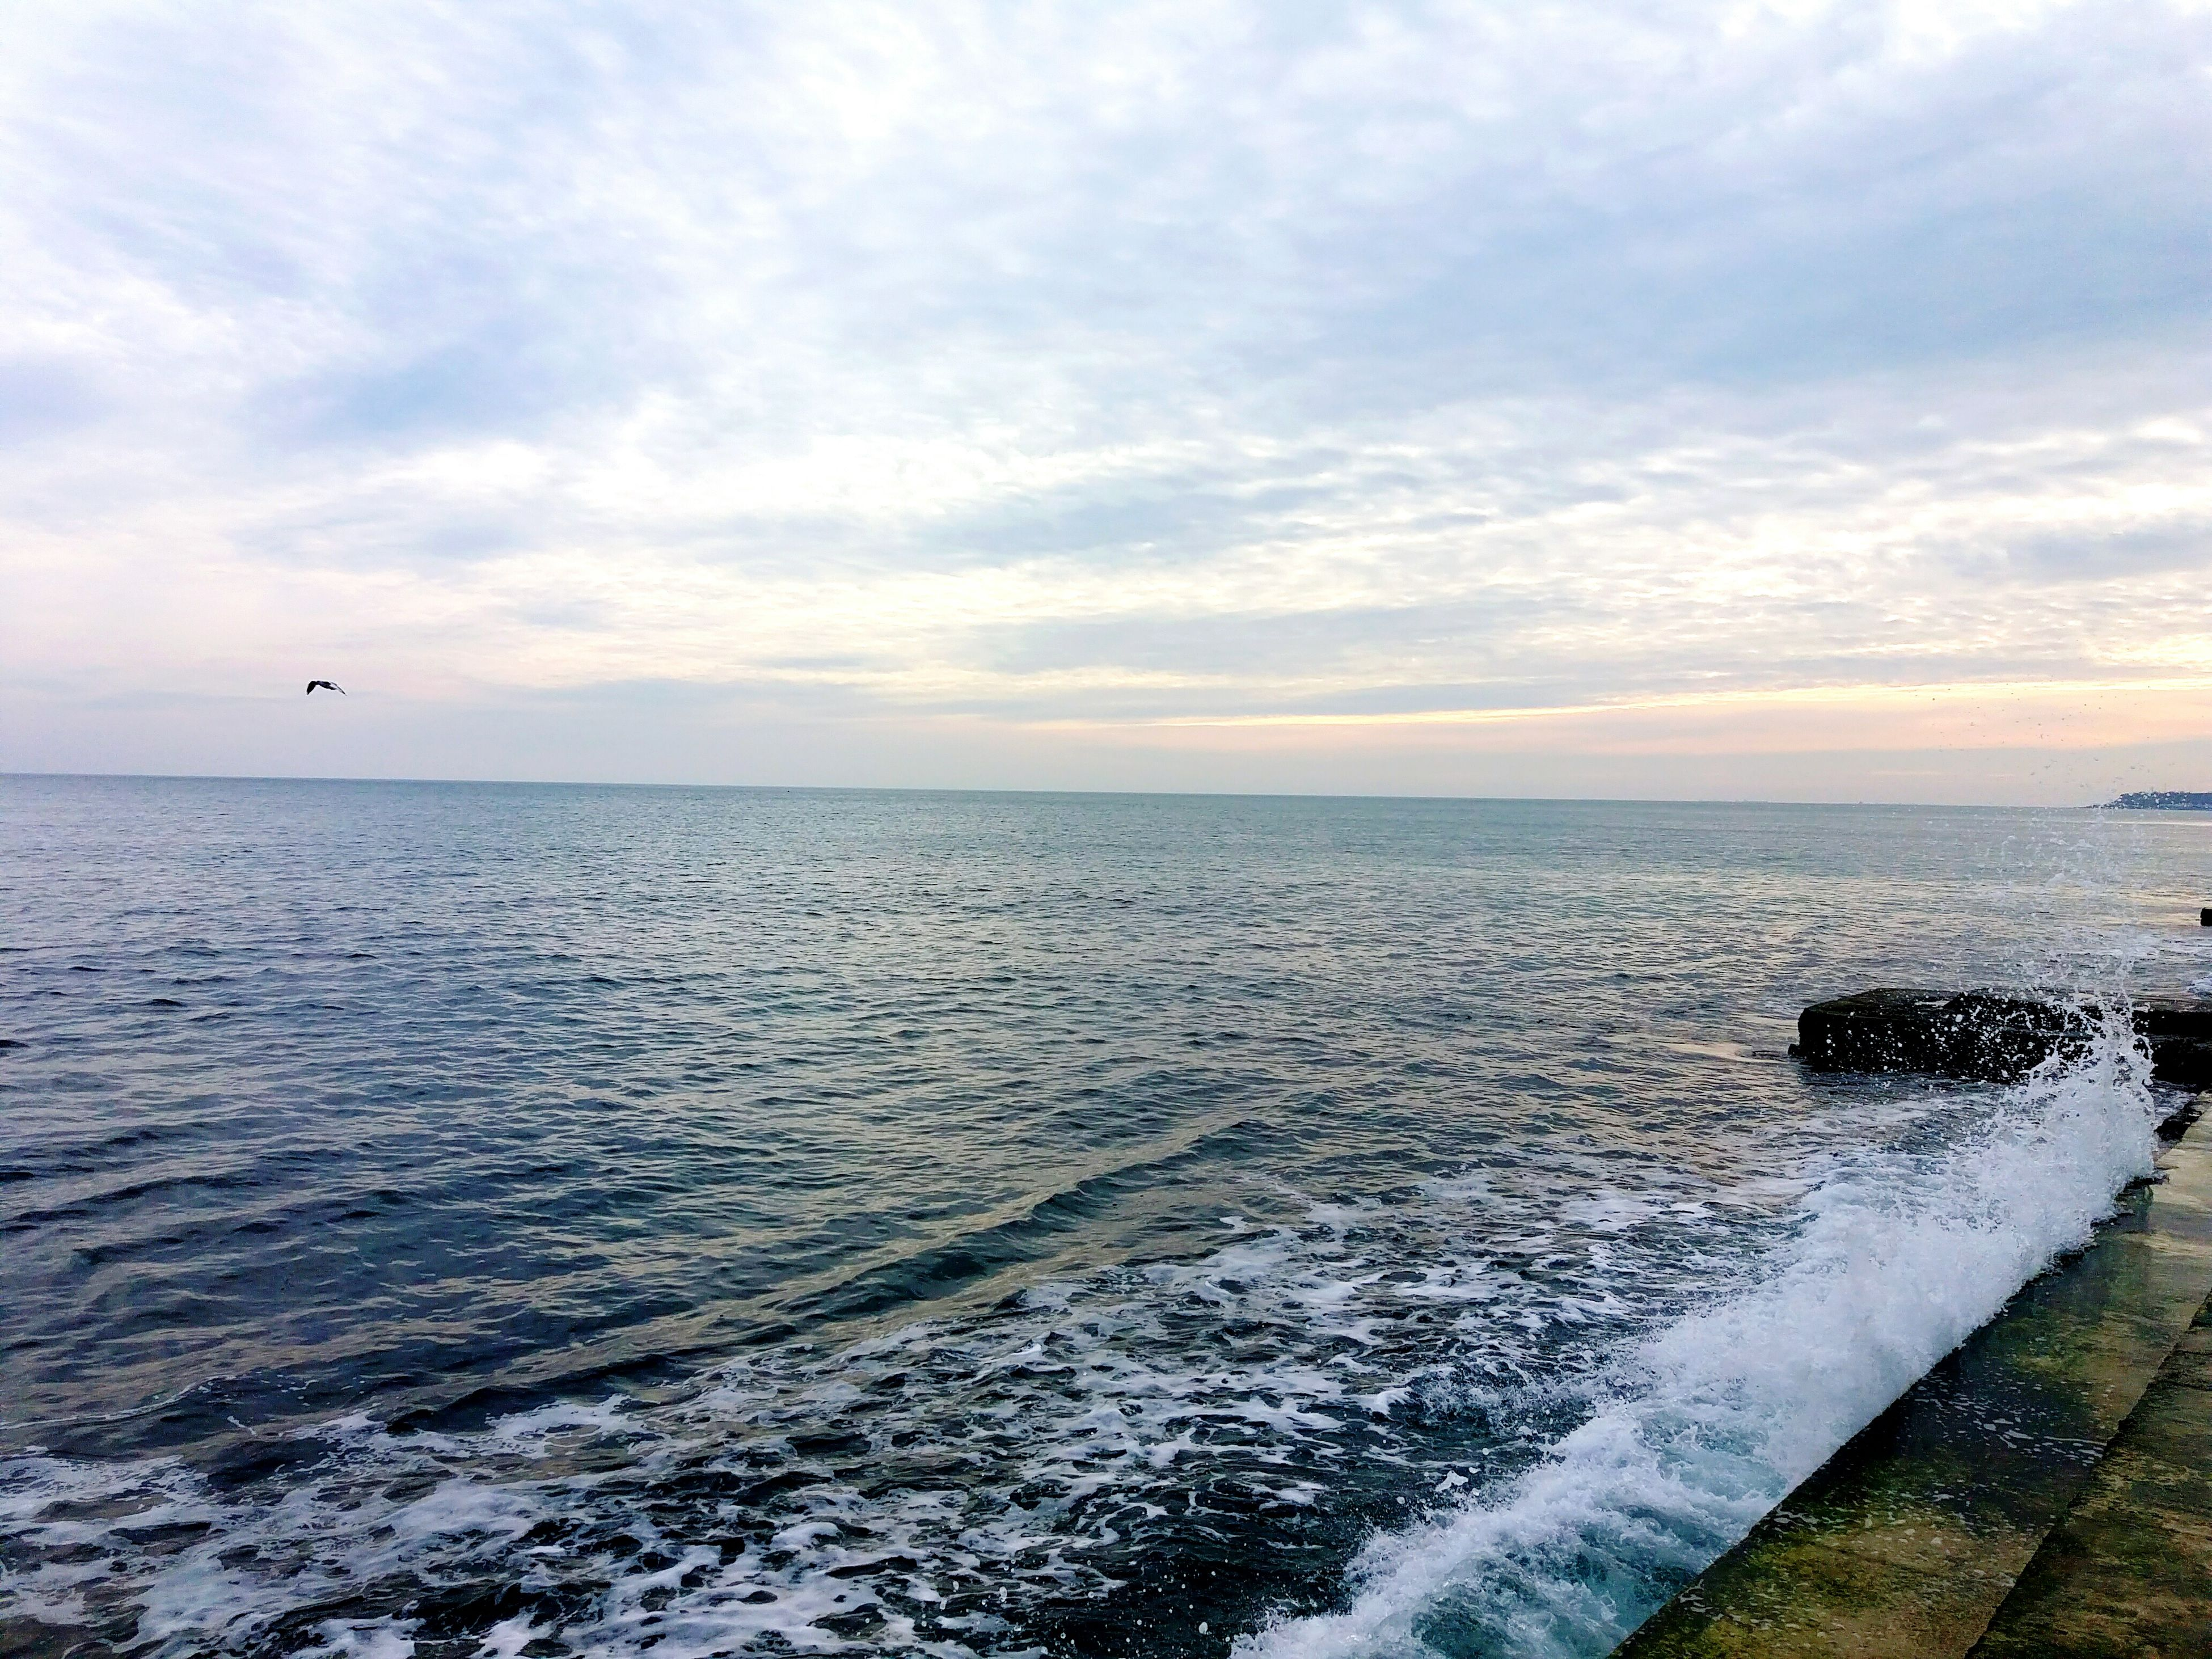 horizon over water, sea, scenics, sky, water, beauty in nature, nature, sunset, flying, cloud - sky, tranquil scene, bird, tranquility, beach, outdoors, no people, day